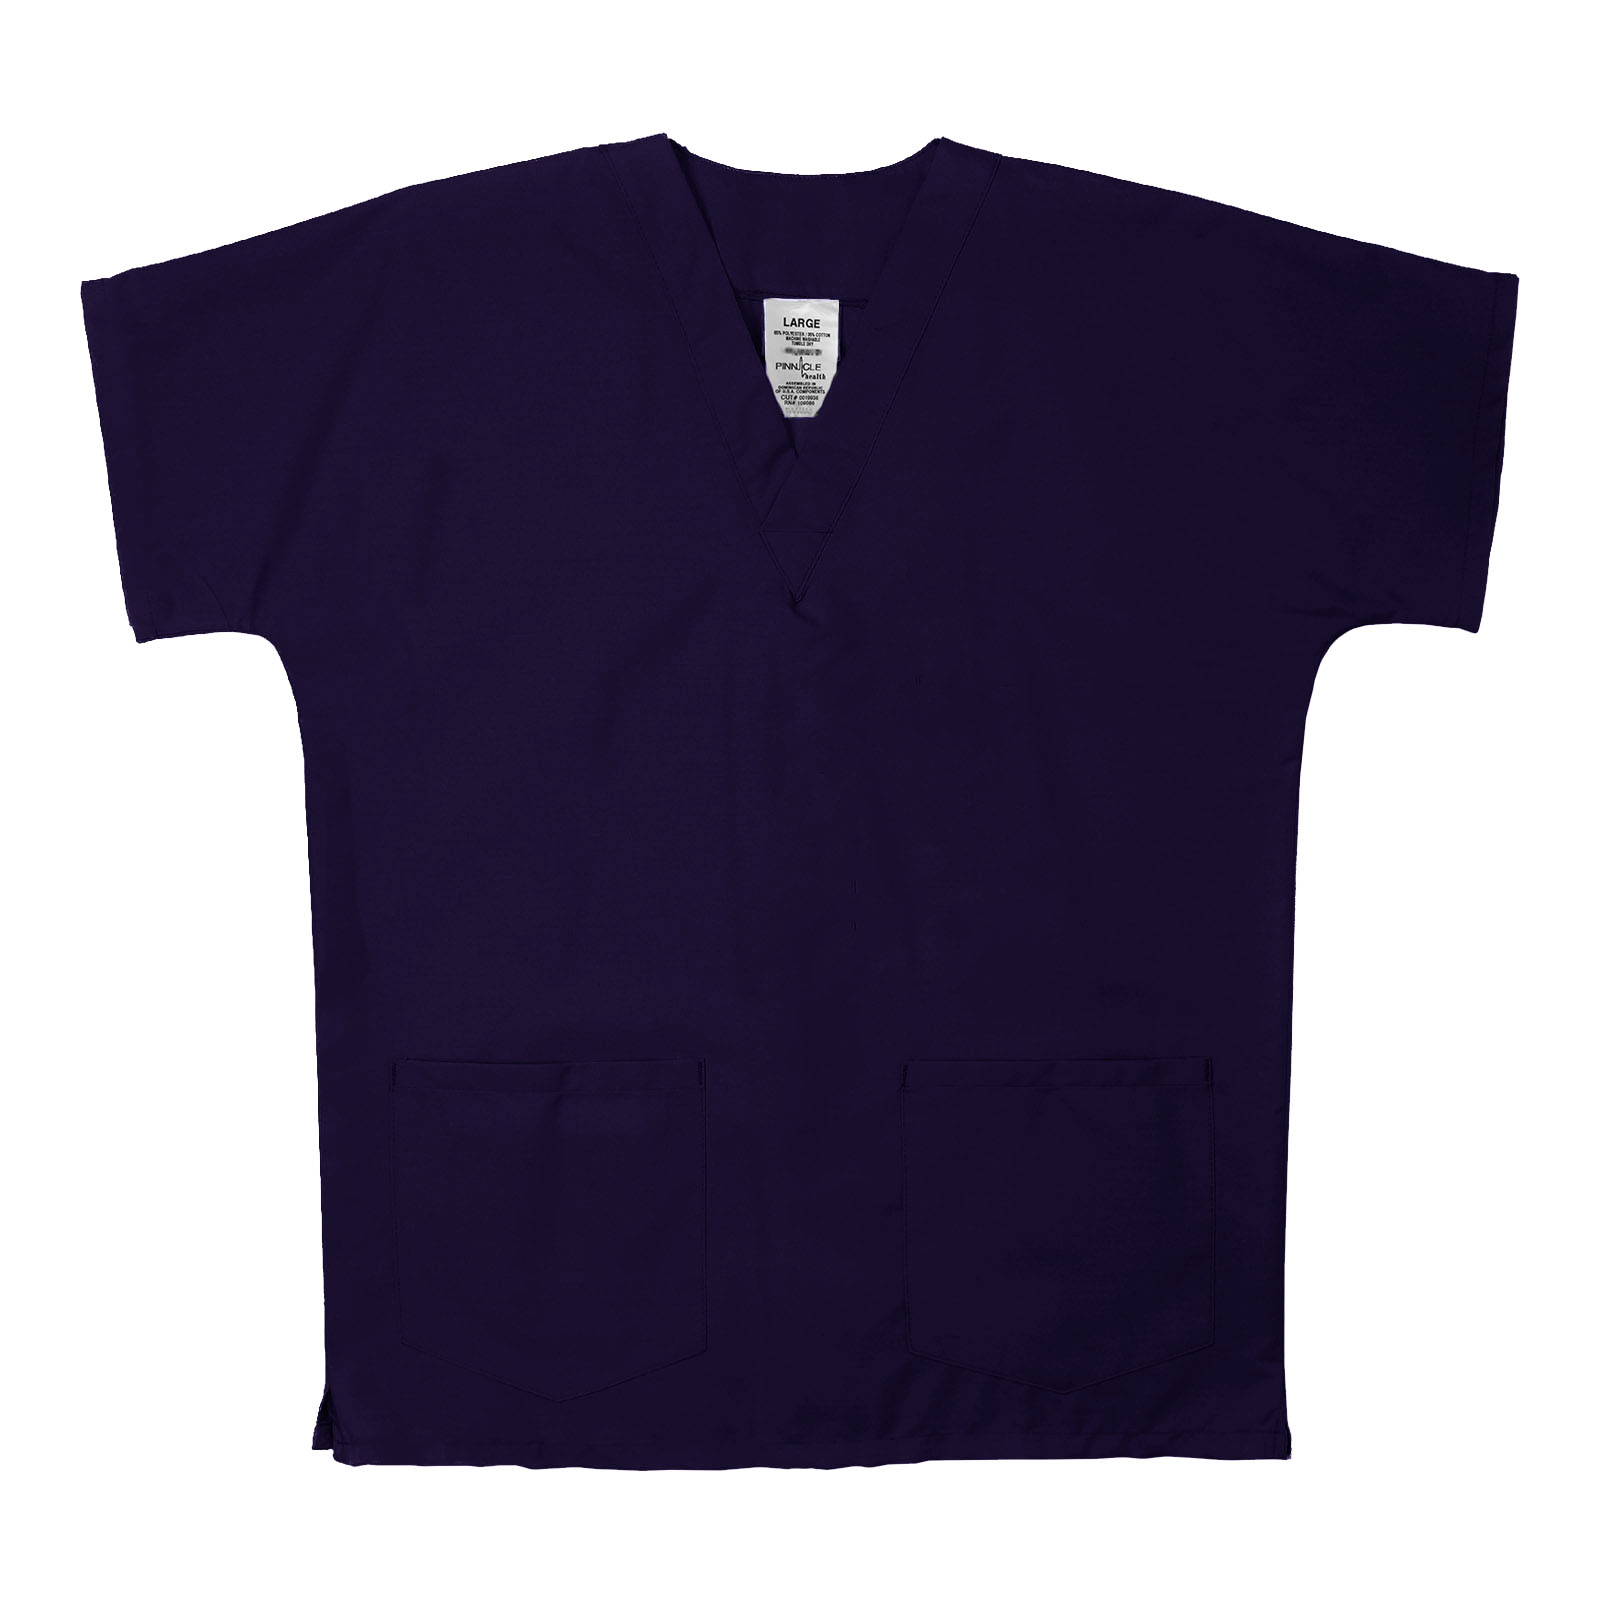 ST62U Purple - Scrub Tunic Top, Unisex, 65/35 P/C